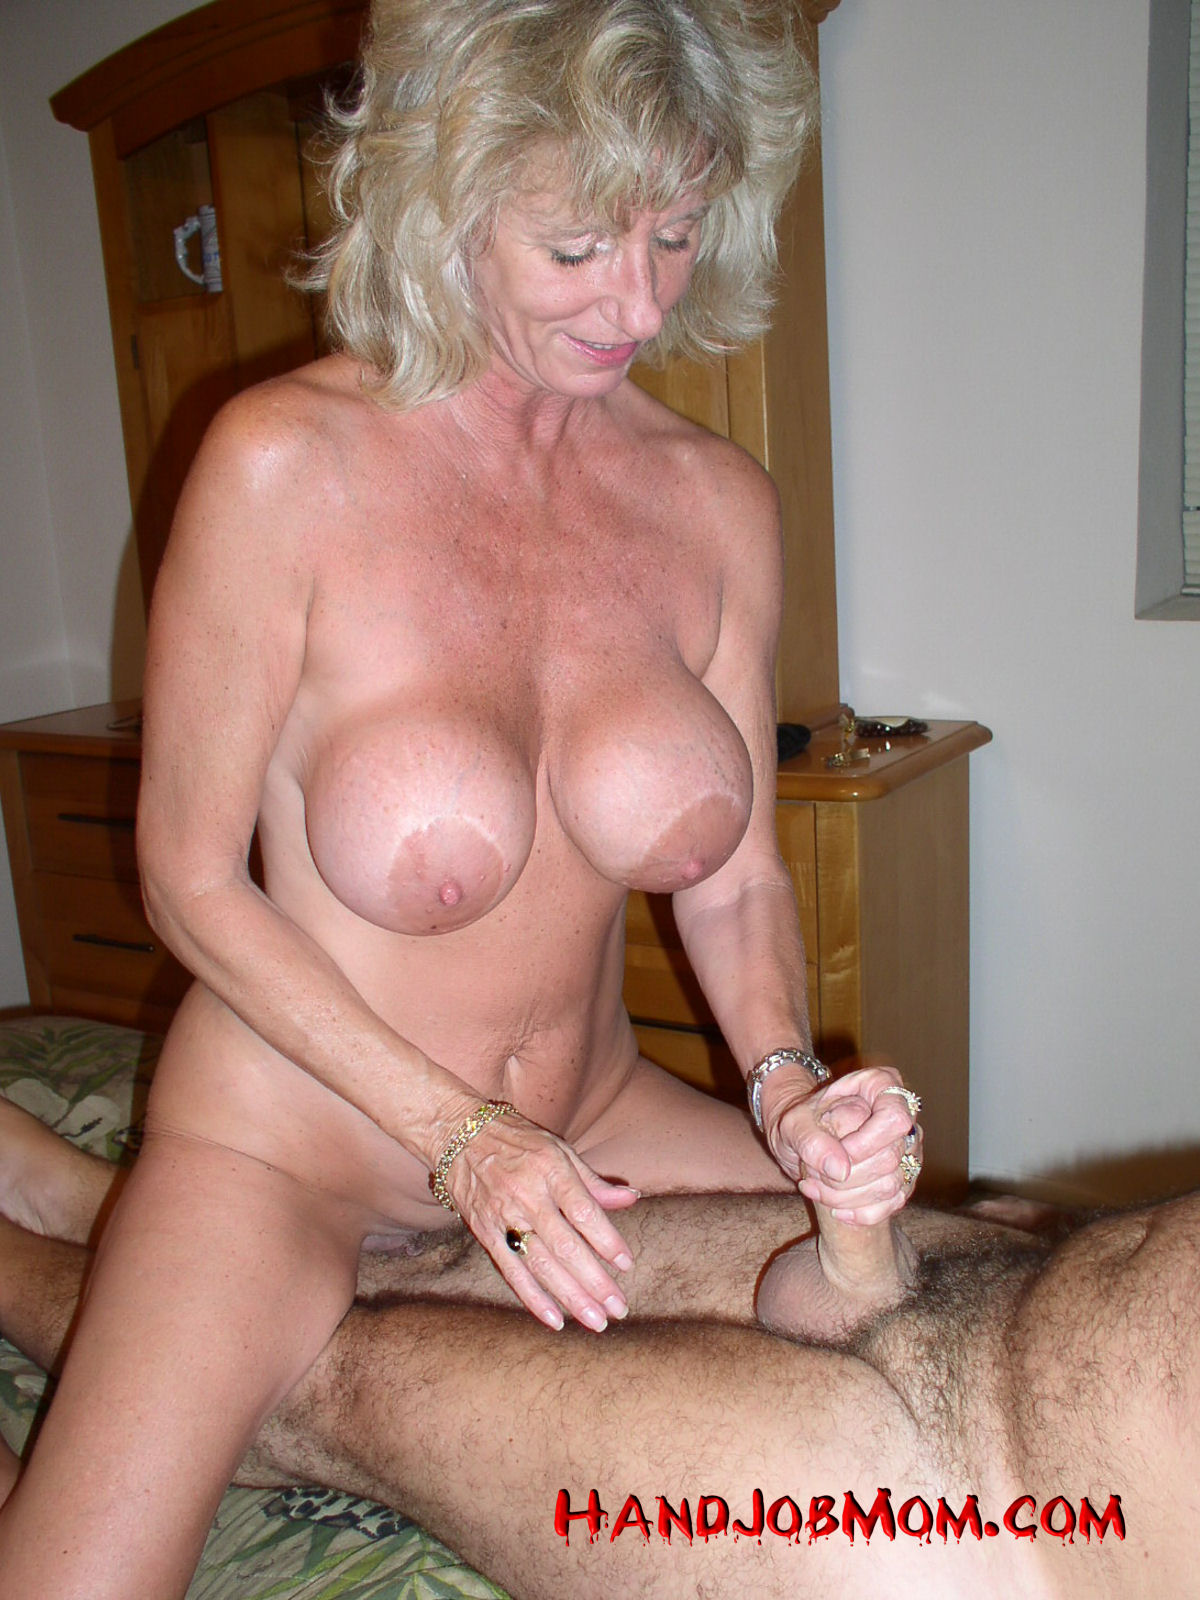 Mature Mom Handjob 74